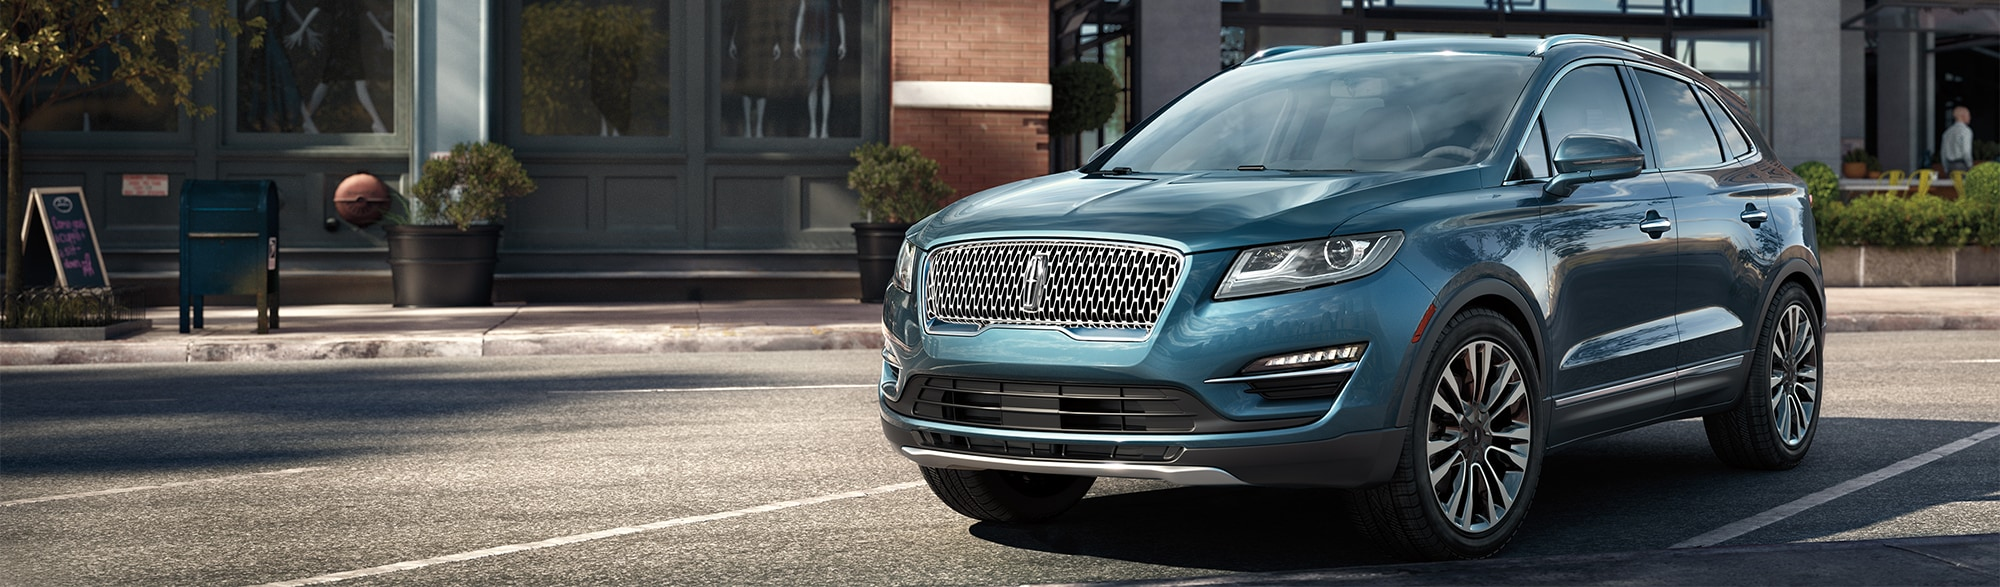 2019 Lincoln MKC: Refreshed, More Tech, More Safety >> 2019 Lincoln Mkc Angela Krause Lincoln